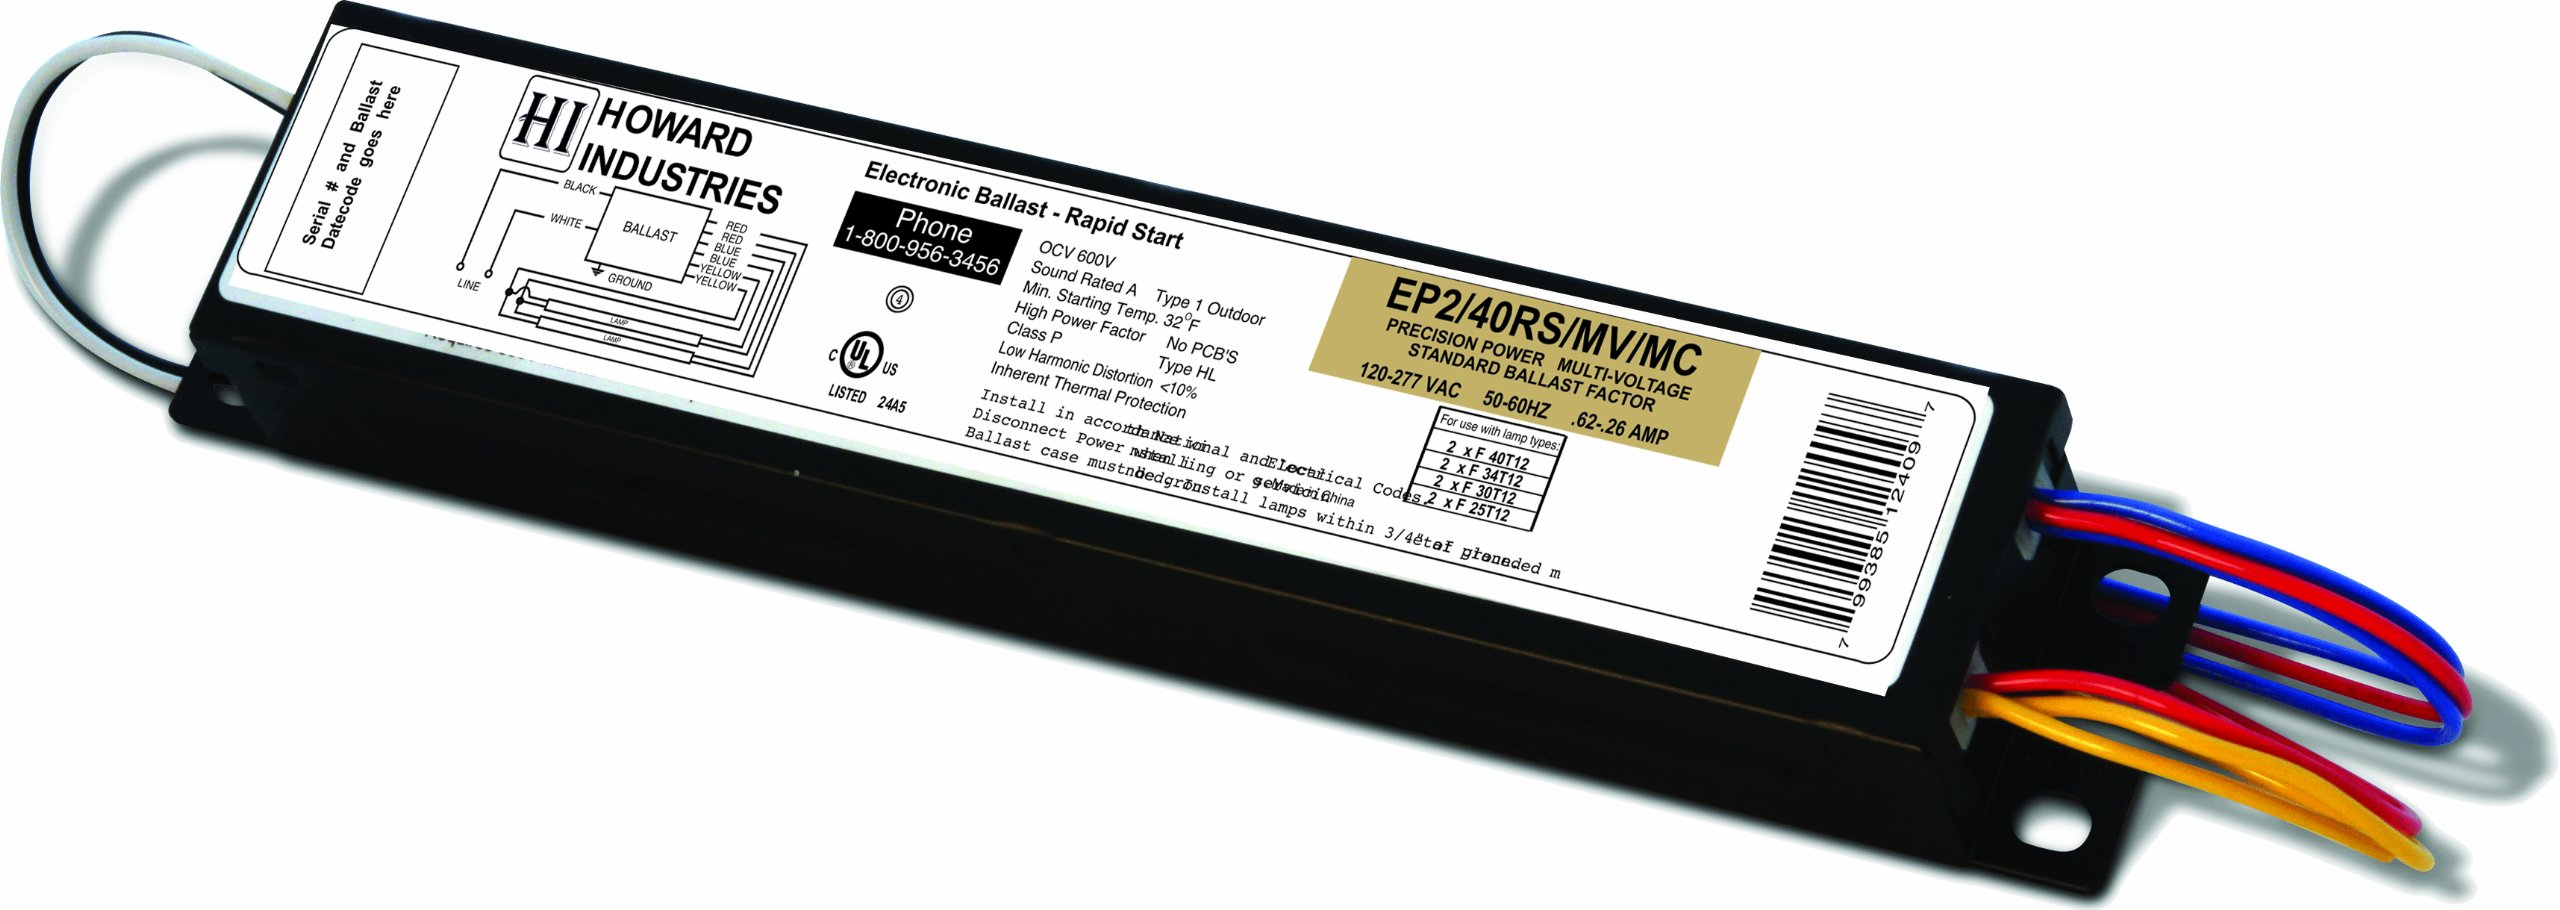 Howard Lighting EP2/40RS/MV/MC Electronic Ballast for Operating  F40T12 Lamps